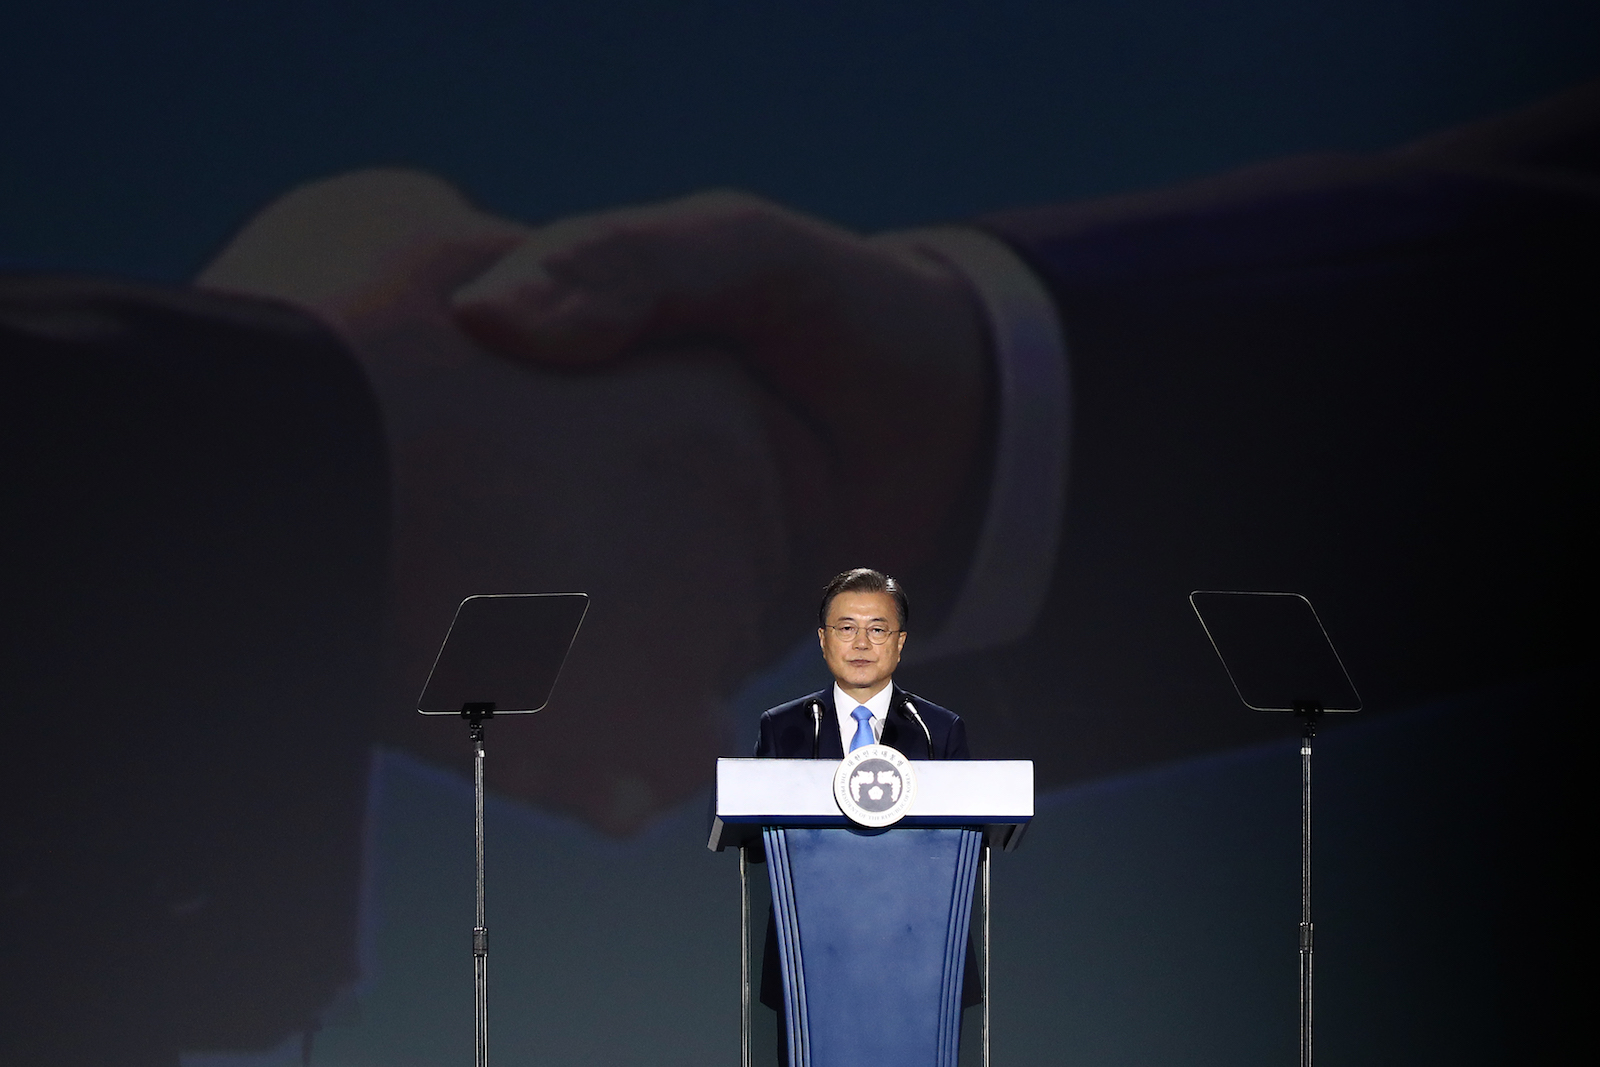 South Korean President Moon Jae-in speaking on the 75th anniversary of Liberation Day, 15 August 2020 in Seoul (Chung Sung-Jun/Getty Images)